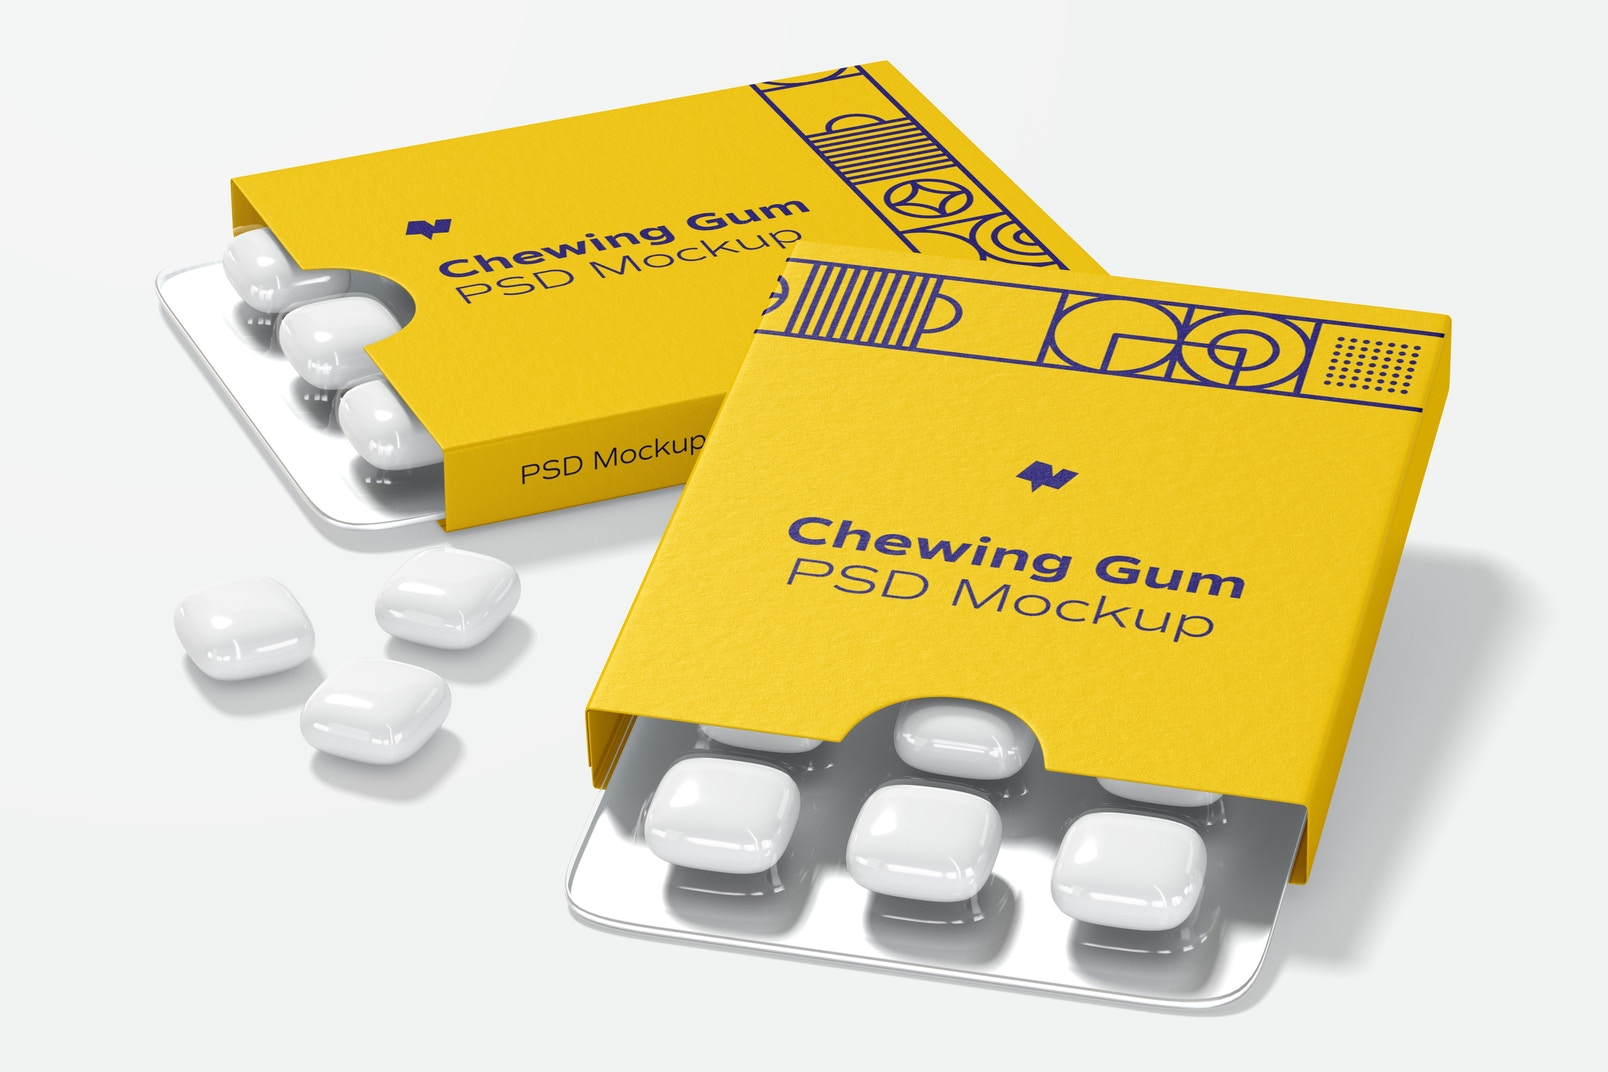 Chewing Gum Packaging Mockup, Right View